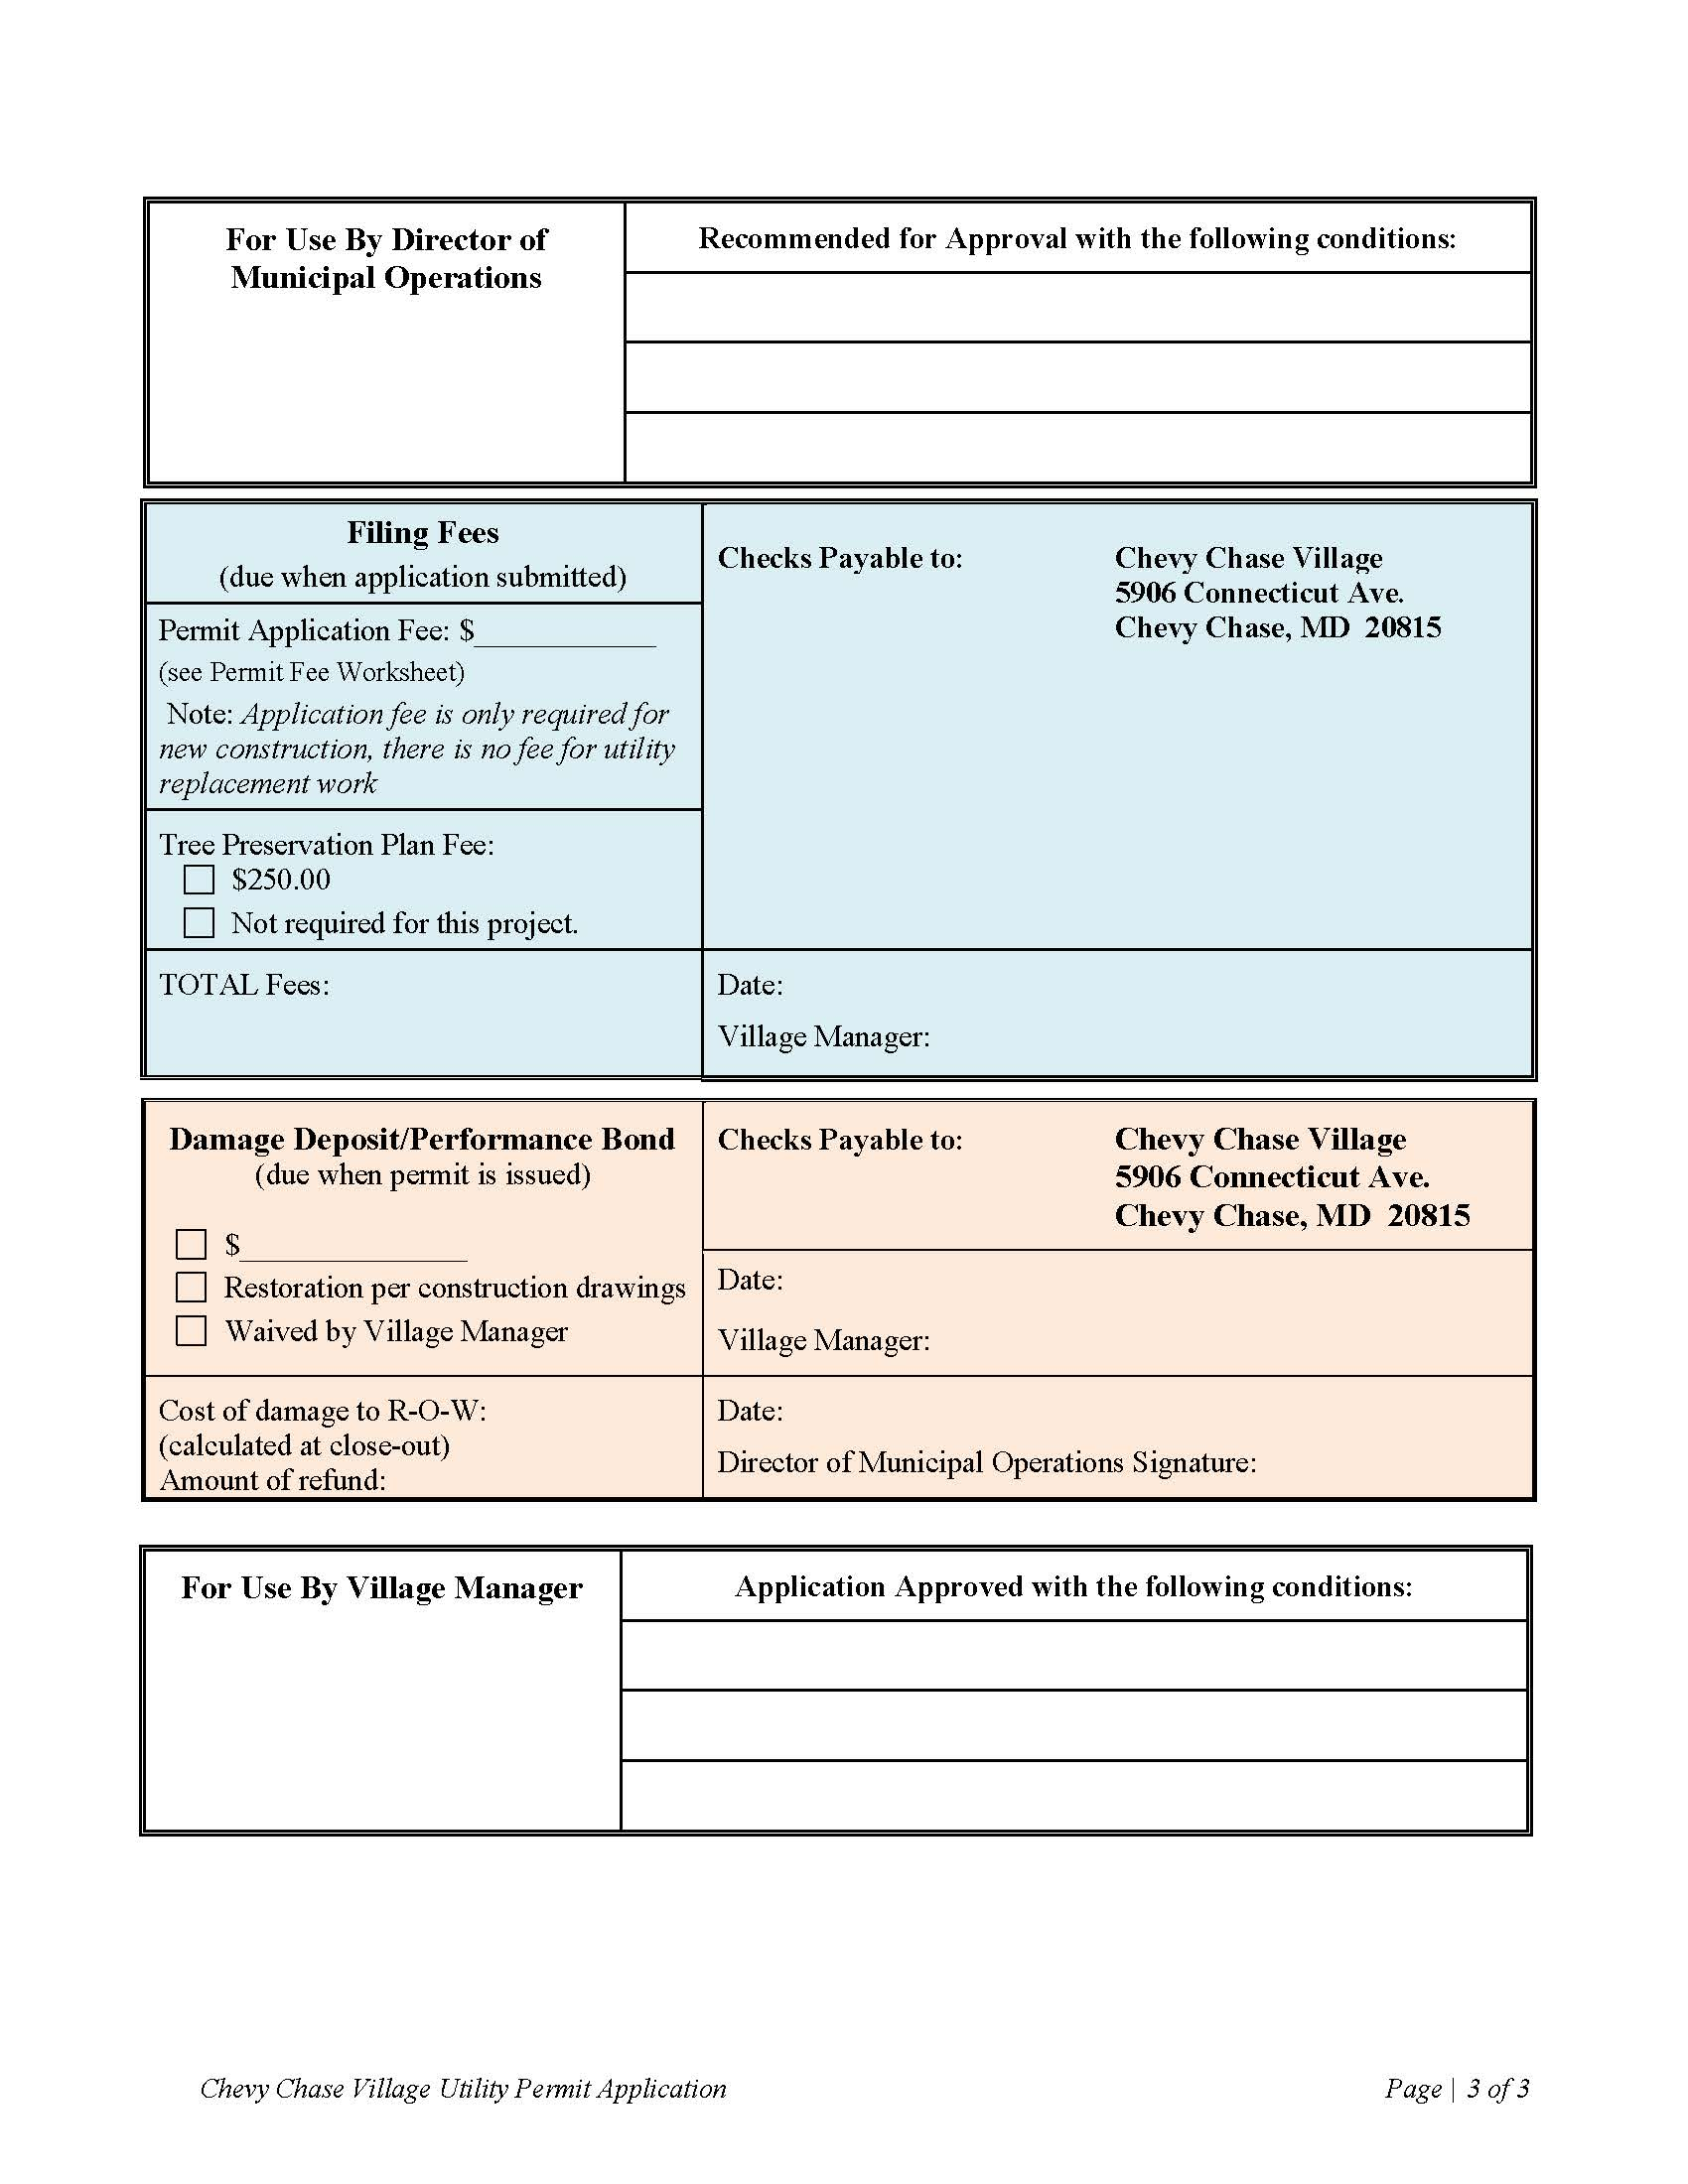 Utility Permit Application page 3